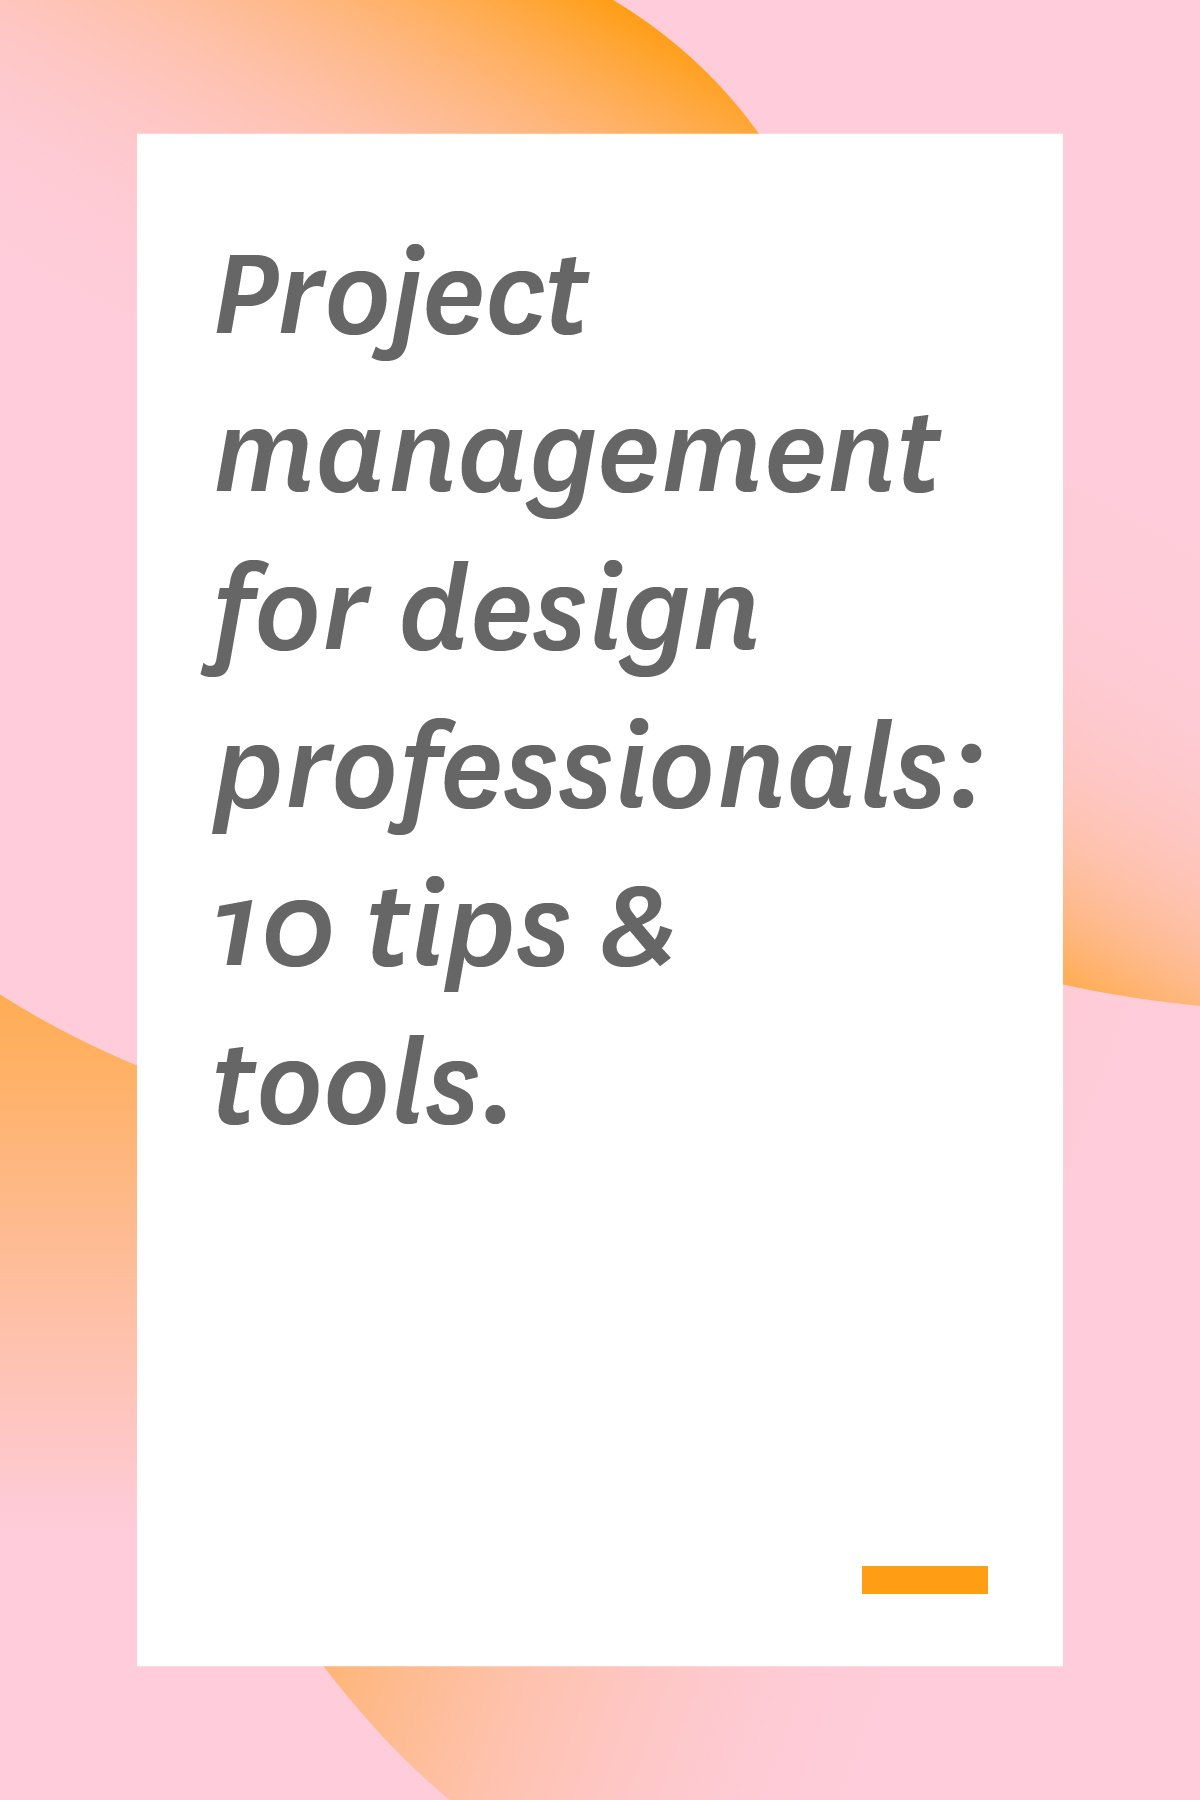 Is your design agency or team juggling multiple projects at once? Stay organized and wow your design clients with these 10 tips and tools for design professionals. #design #projectmanagement